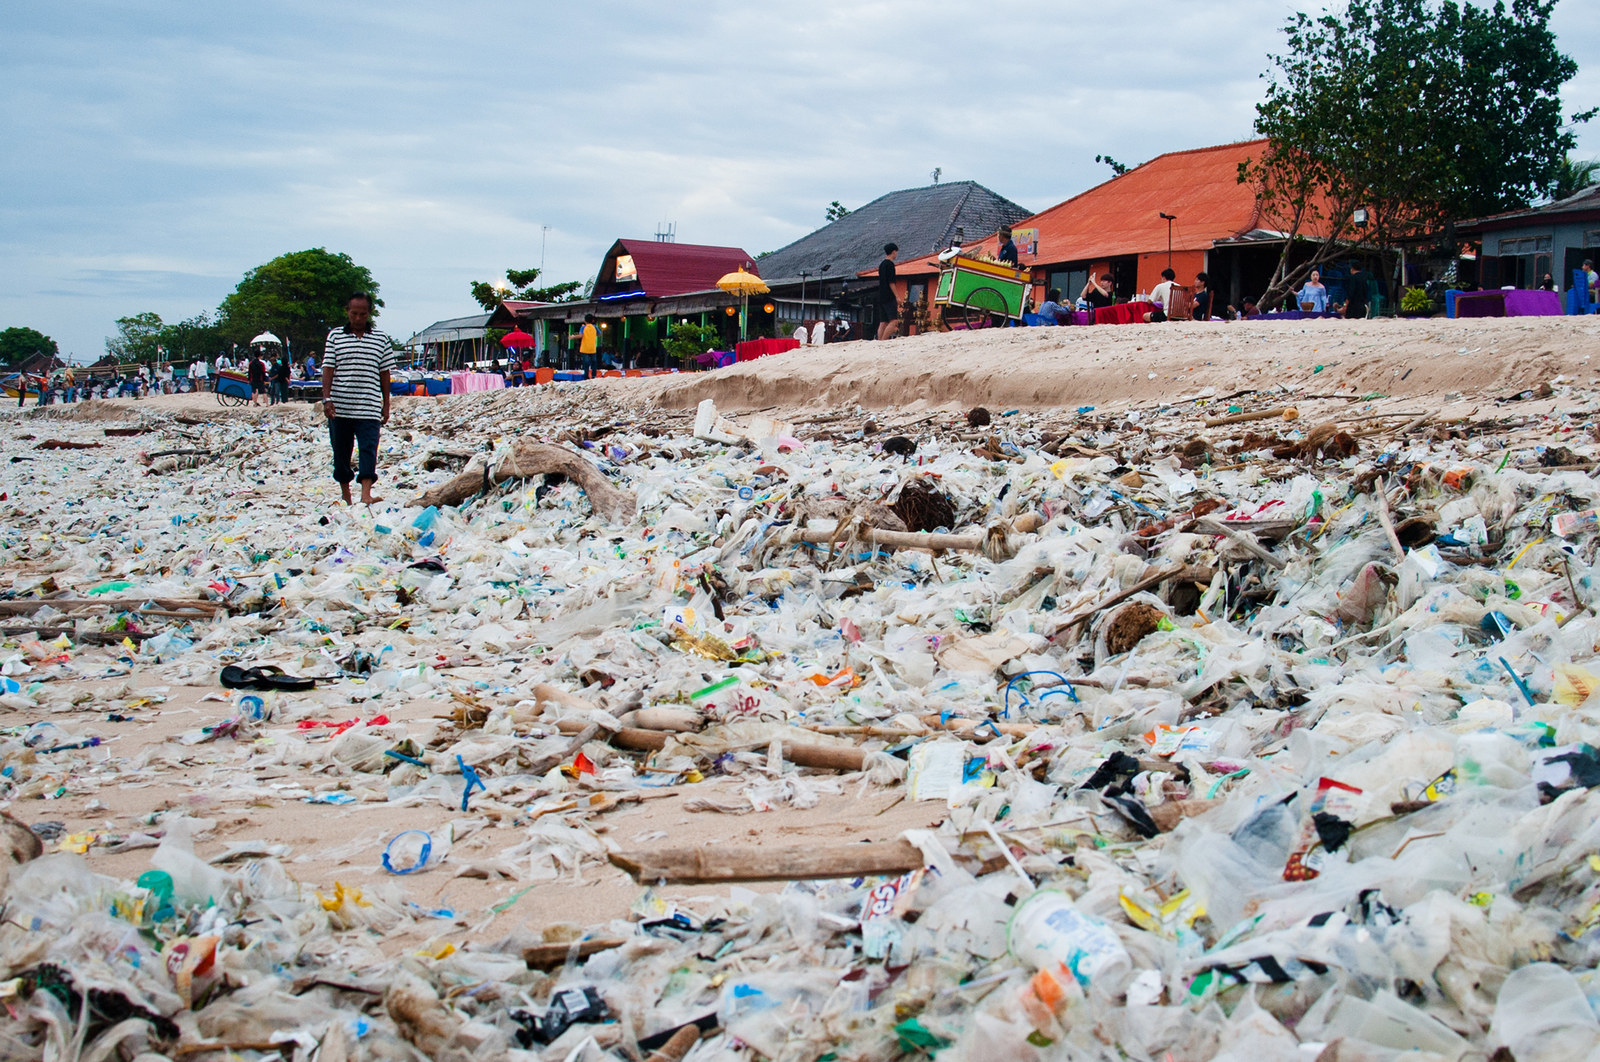 Local residents observed to see piles of garbage on January 17, 2018 at Kedonganan beach, Bali, Indonesia. (Photo by Muhammad Fauzy/NurPhoto via Getty Images)